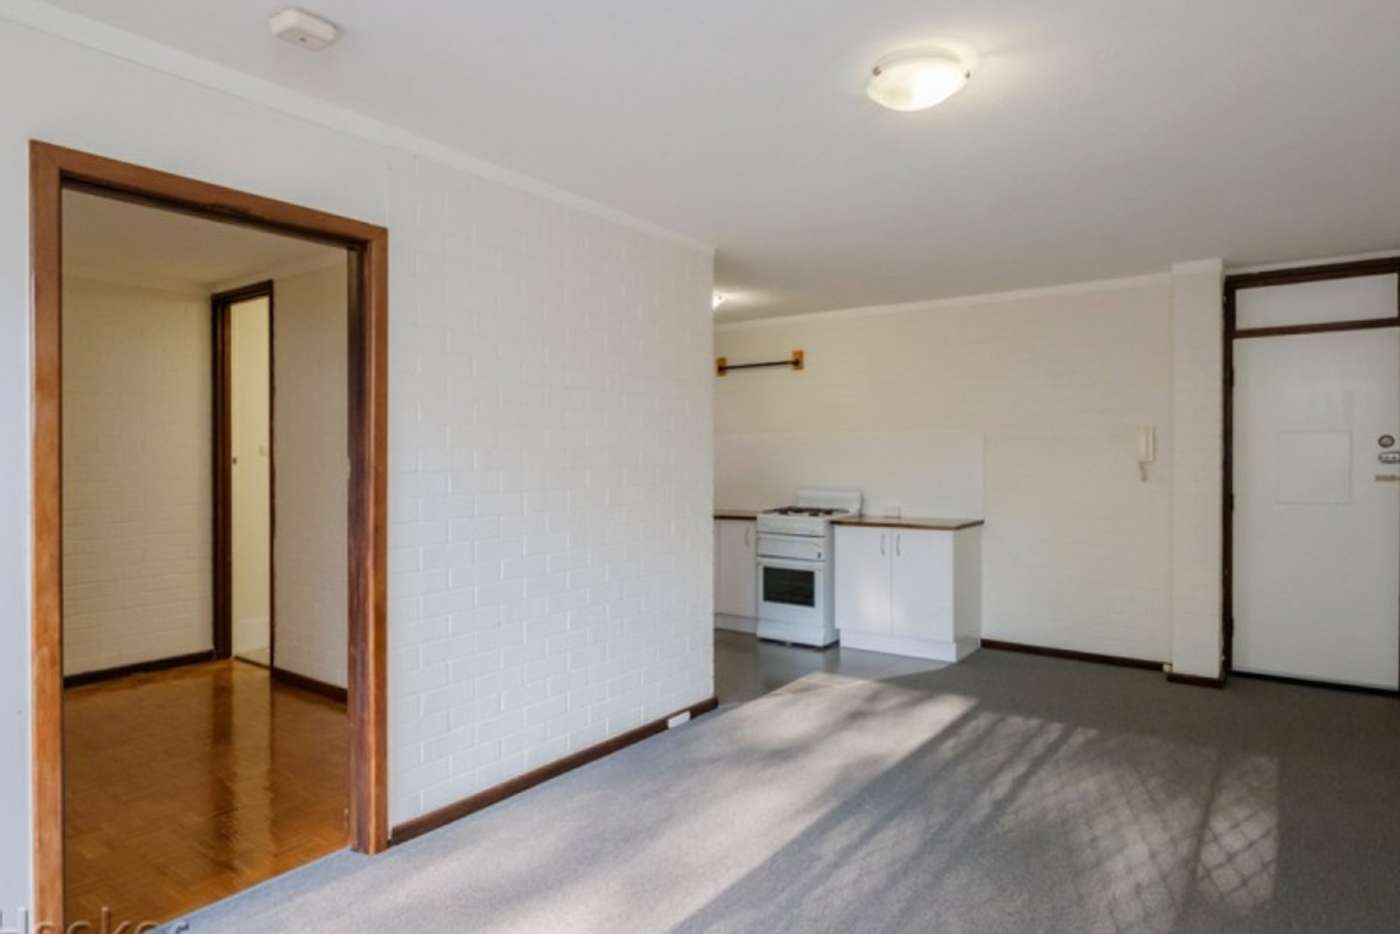 Main view of Homely apartment listing, 1/38 Waterloo Crescent, East Perth WA 6004